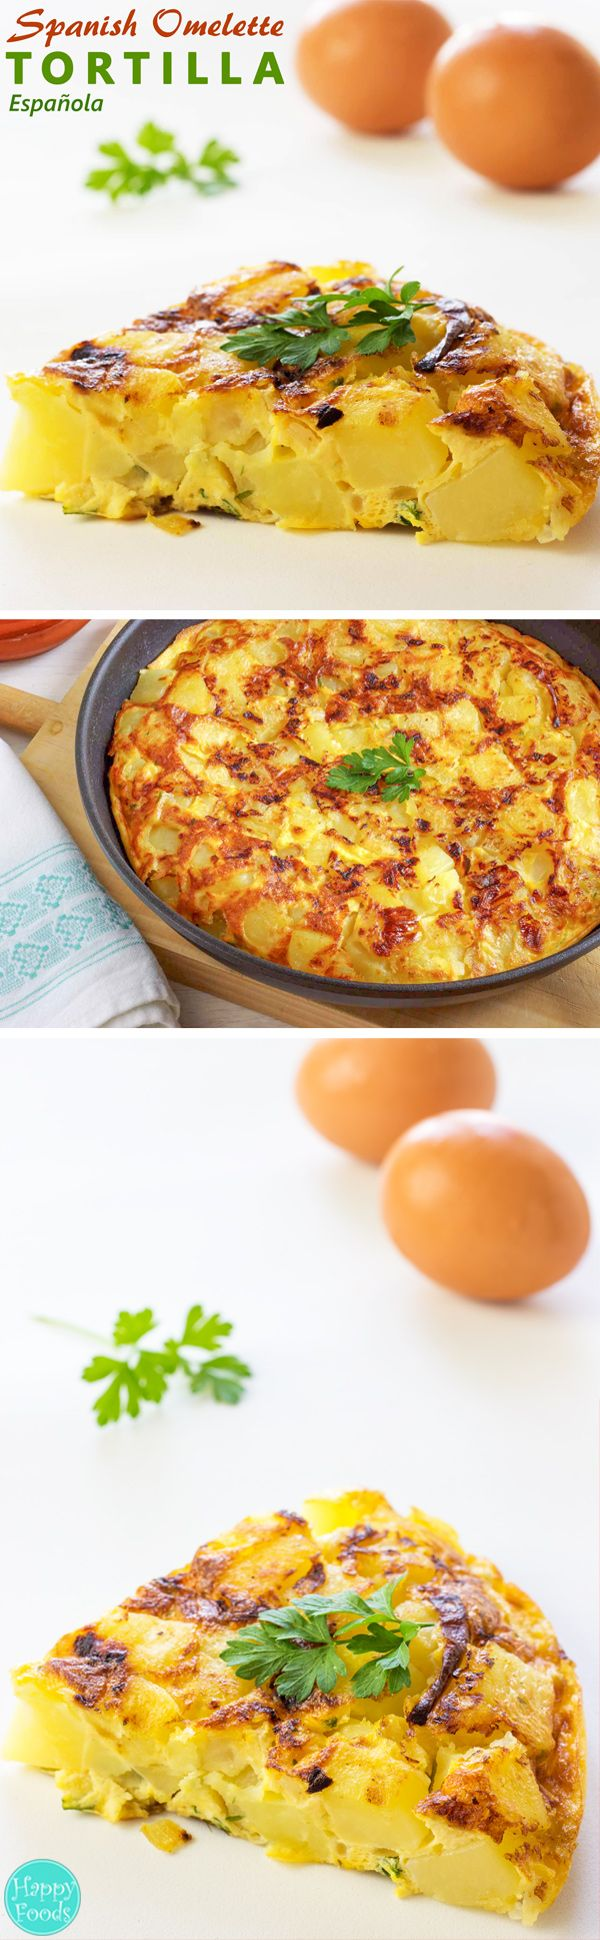 Spanish Omelette (Tortilla Española) - This traditional Spanish dish is made from eggs and potatoes. Easy recipe from Spain. | happyfoodstube.com